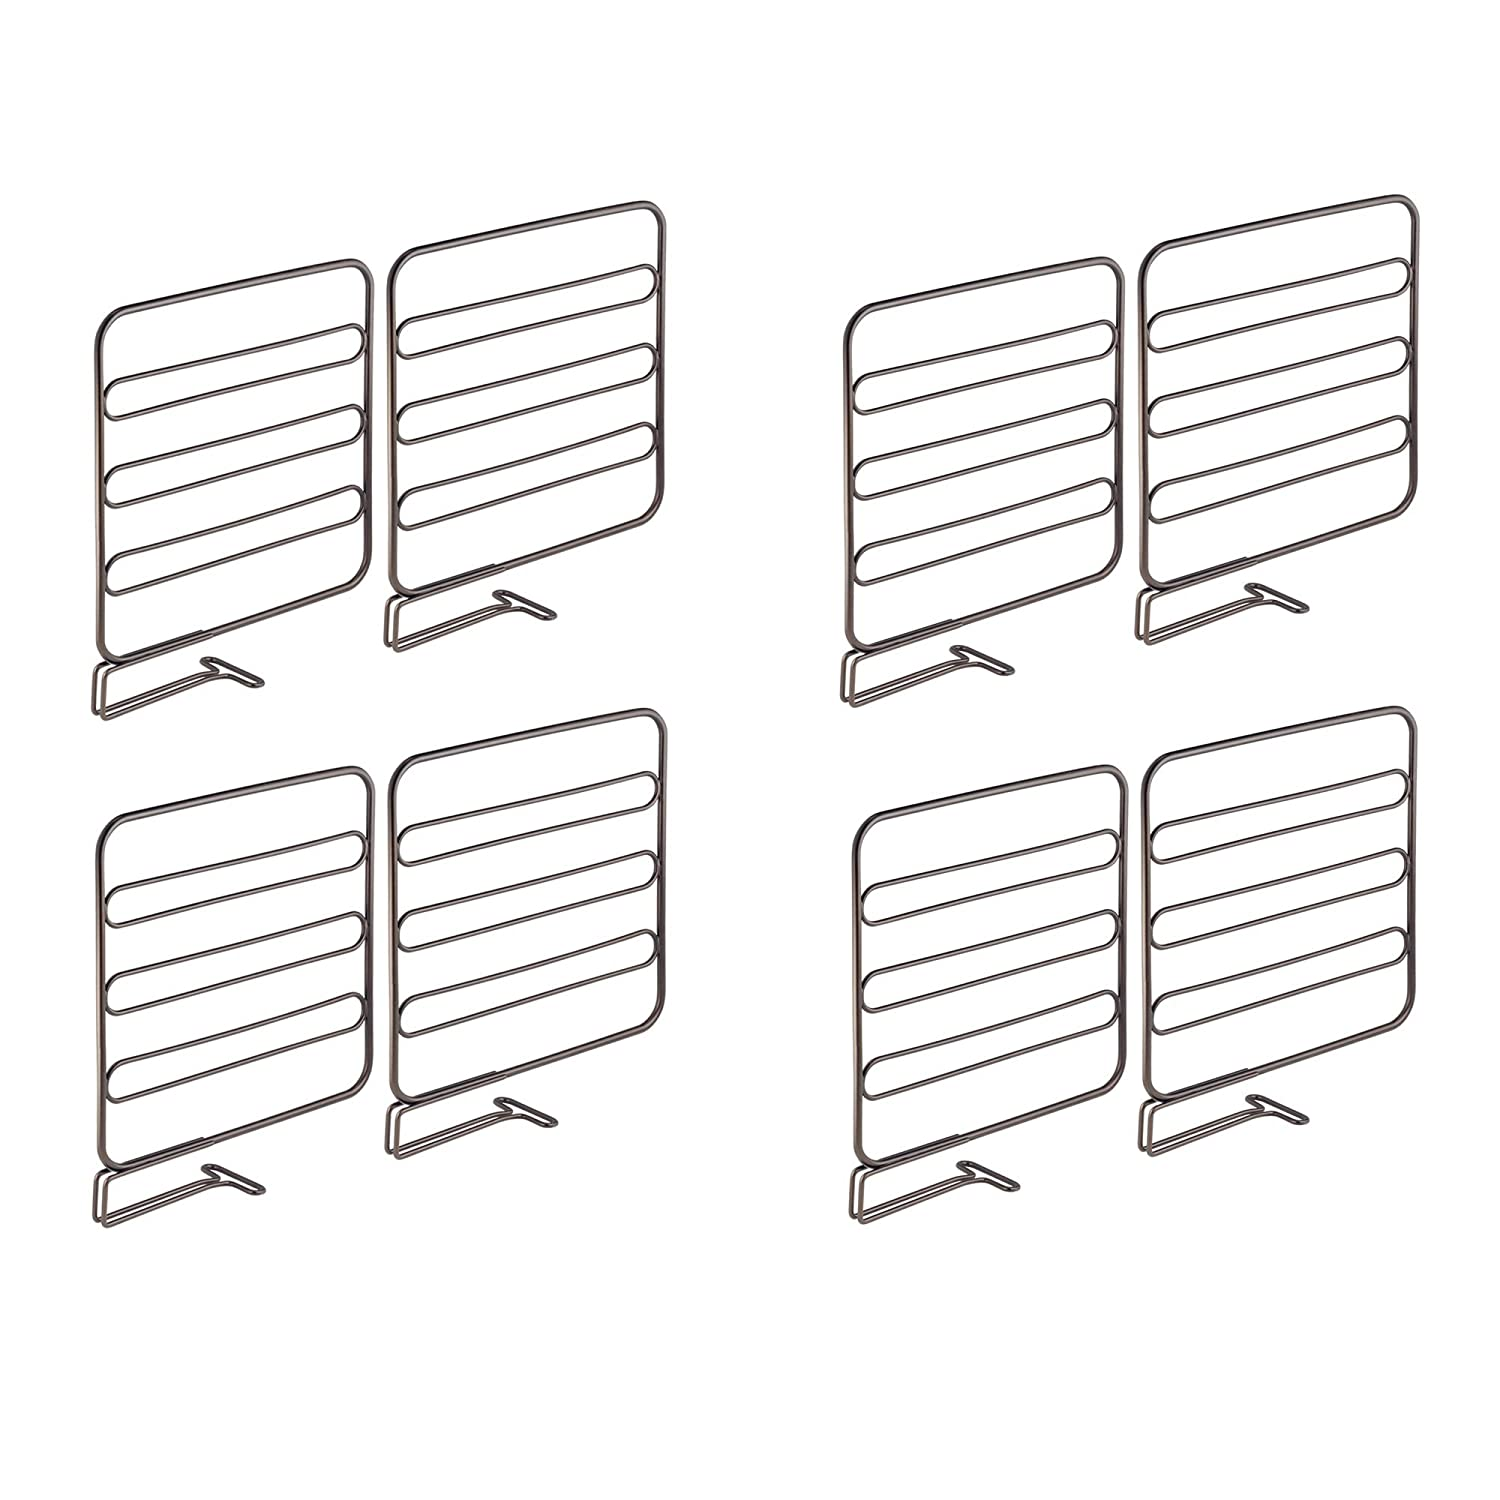 mDesign Versatile Metal Wire Closet Shelf Divider and Separator for Storage and Organization in Bedroom, Bathroom, Kitchen and Office Shelves - Easy Install - 4 Pack - Chrome MetroDecor 3503MDCO